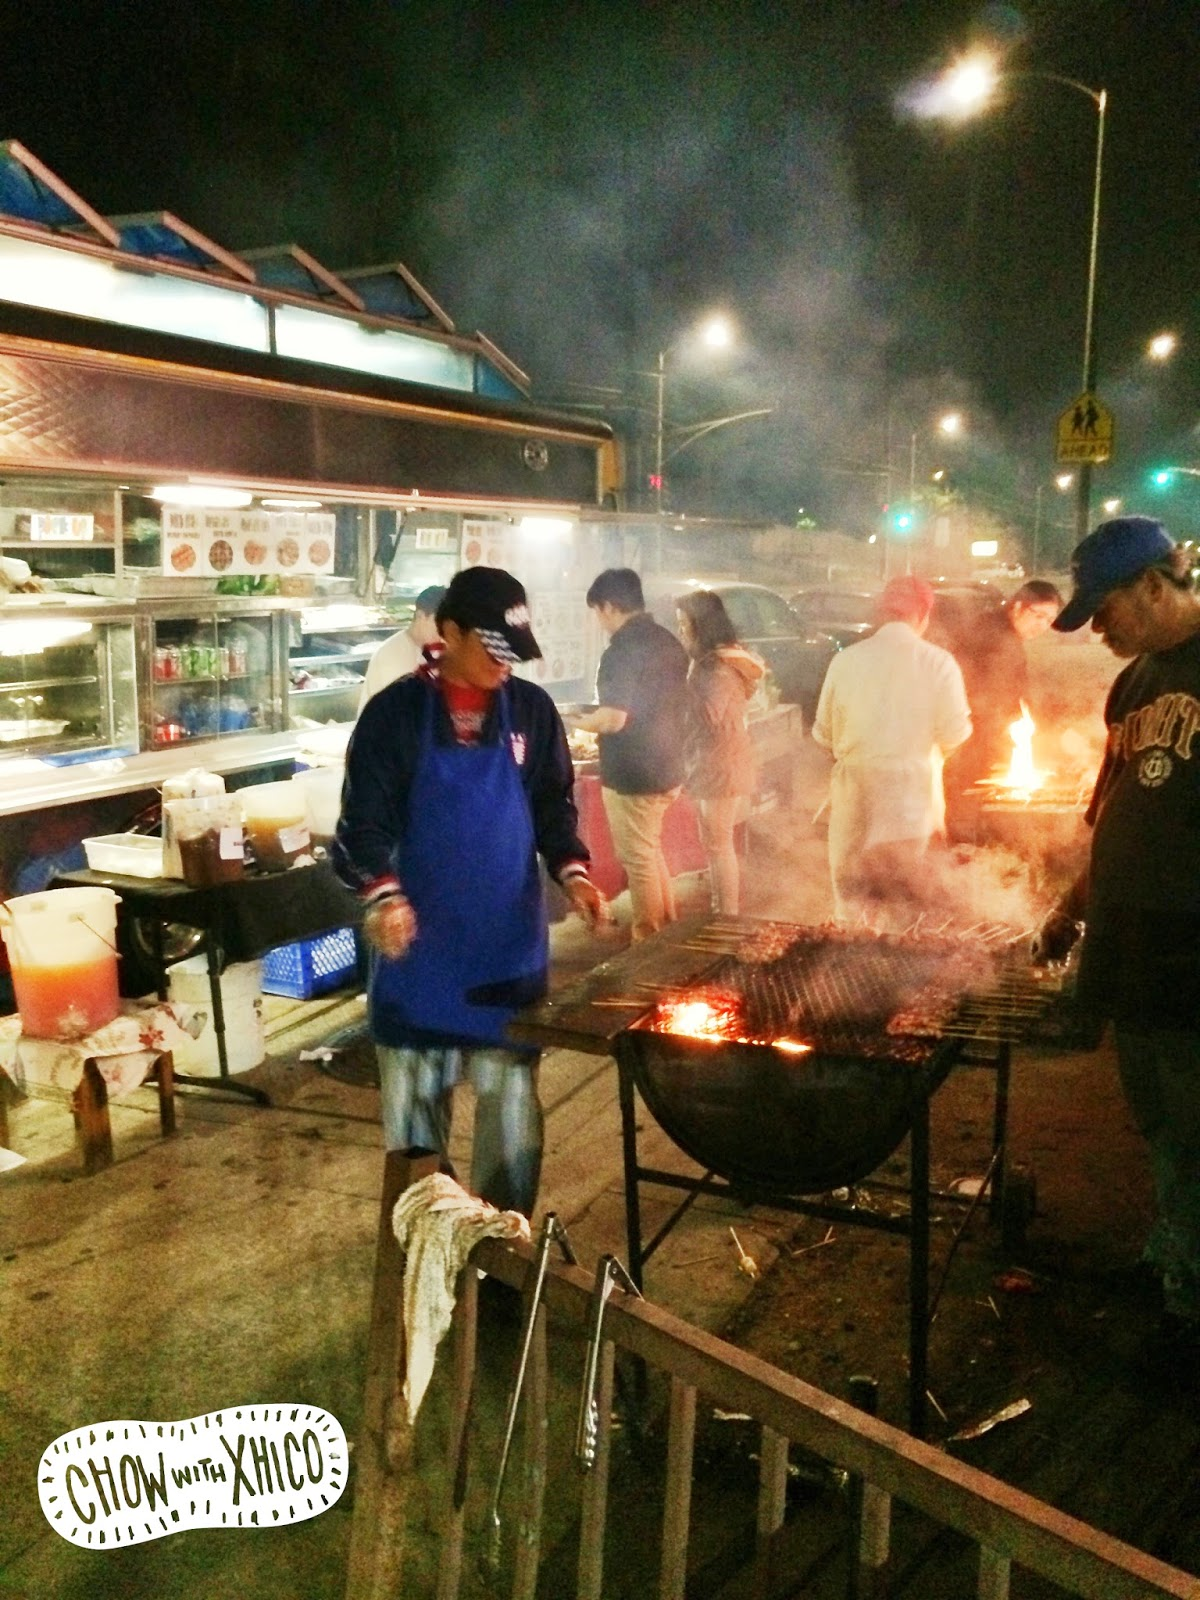 Fire makes food better! BBQ right on the street.